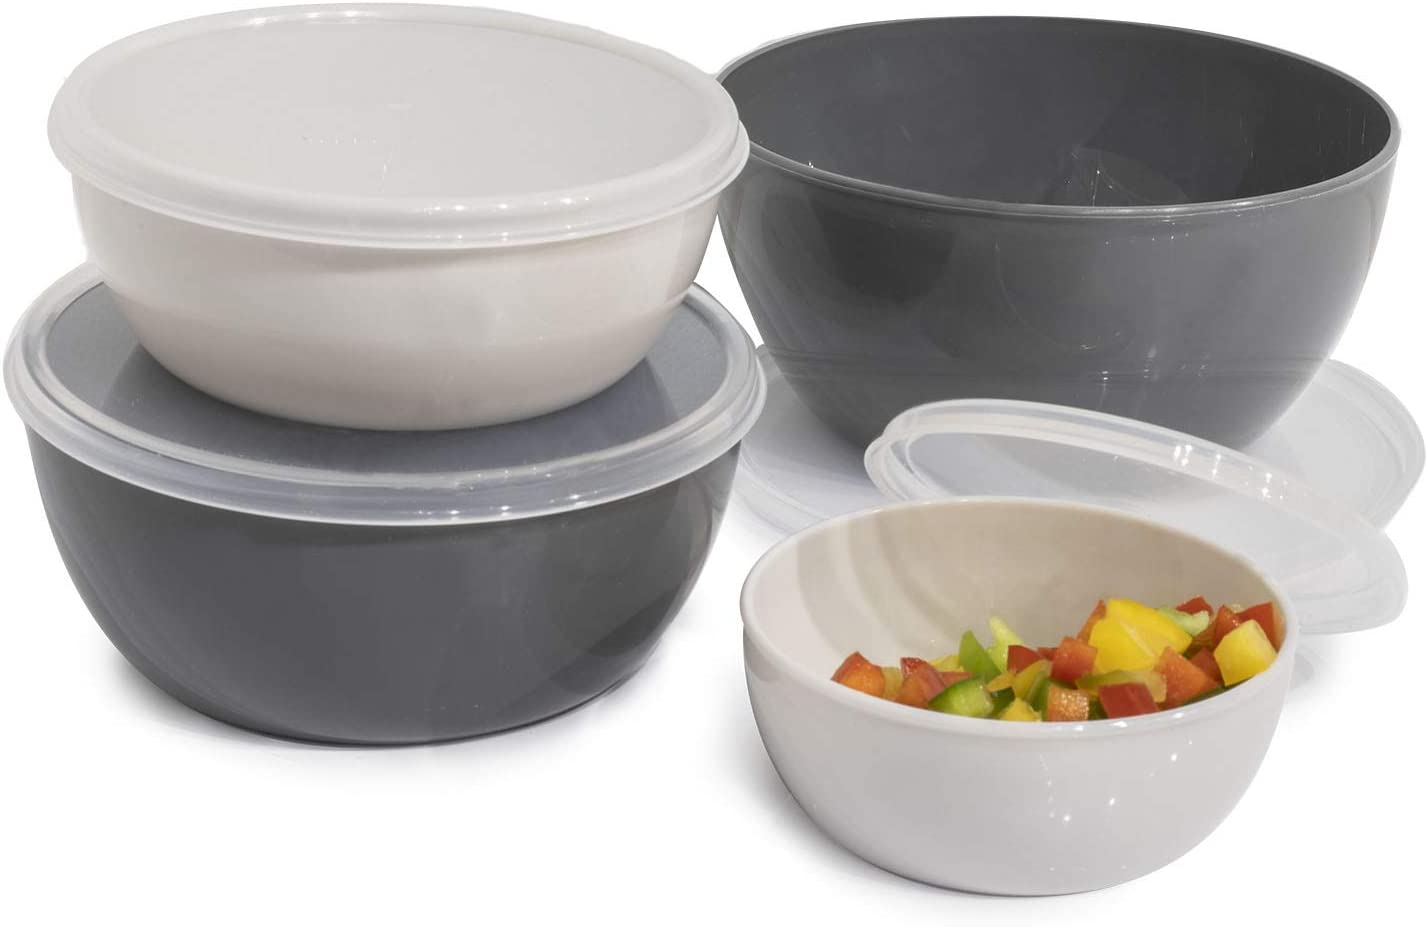 Cook with Color Plastic Prep Bowls - Mini Bowls with Lids, 8 Piece Nesting Bowls Set includes 4 Prep Bowls and 4 Lids (Ombre Gray)